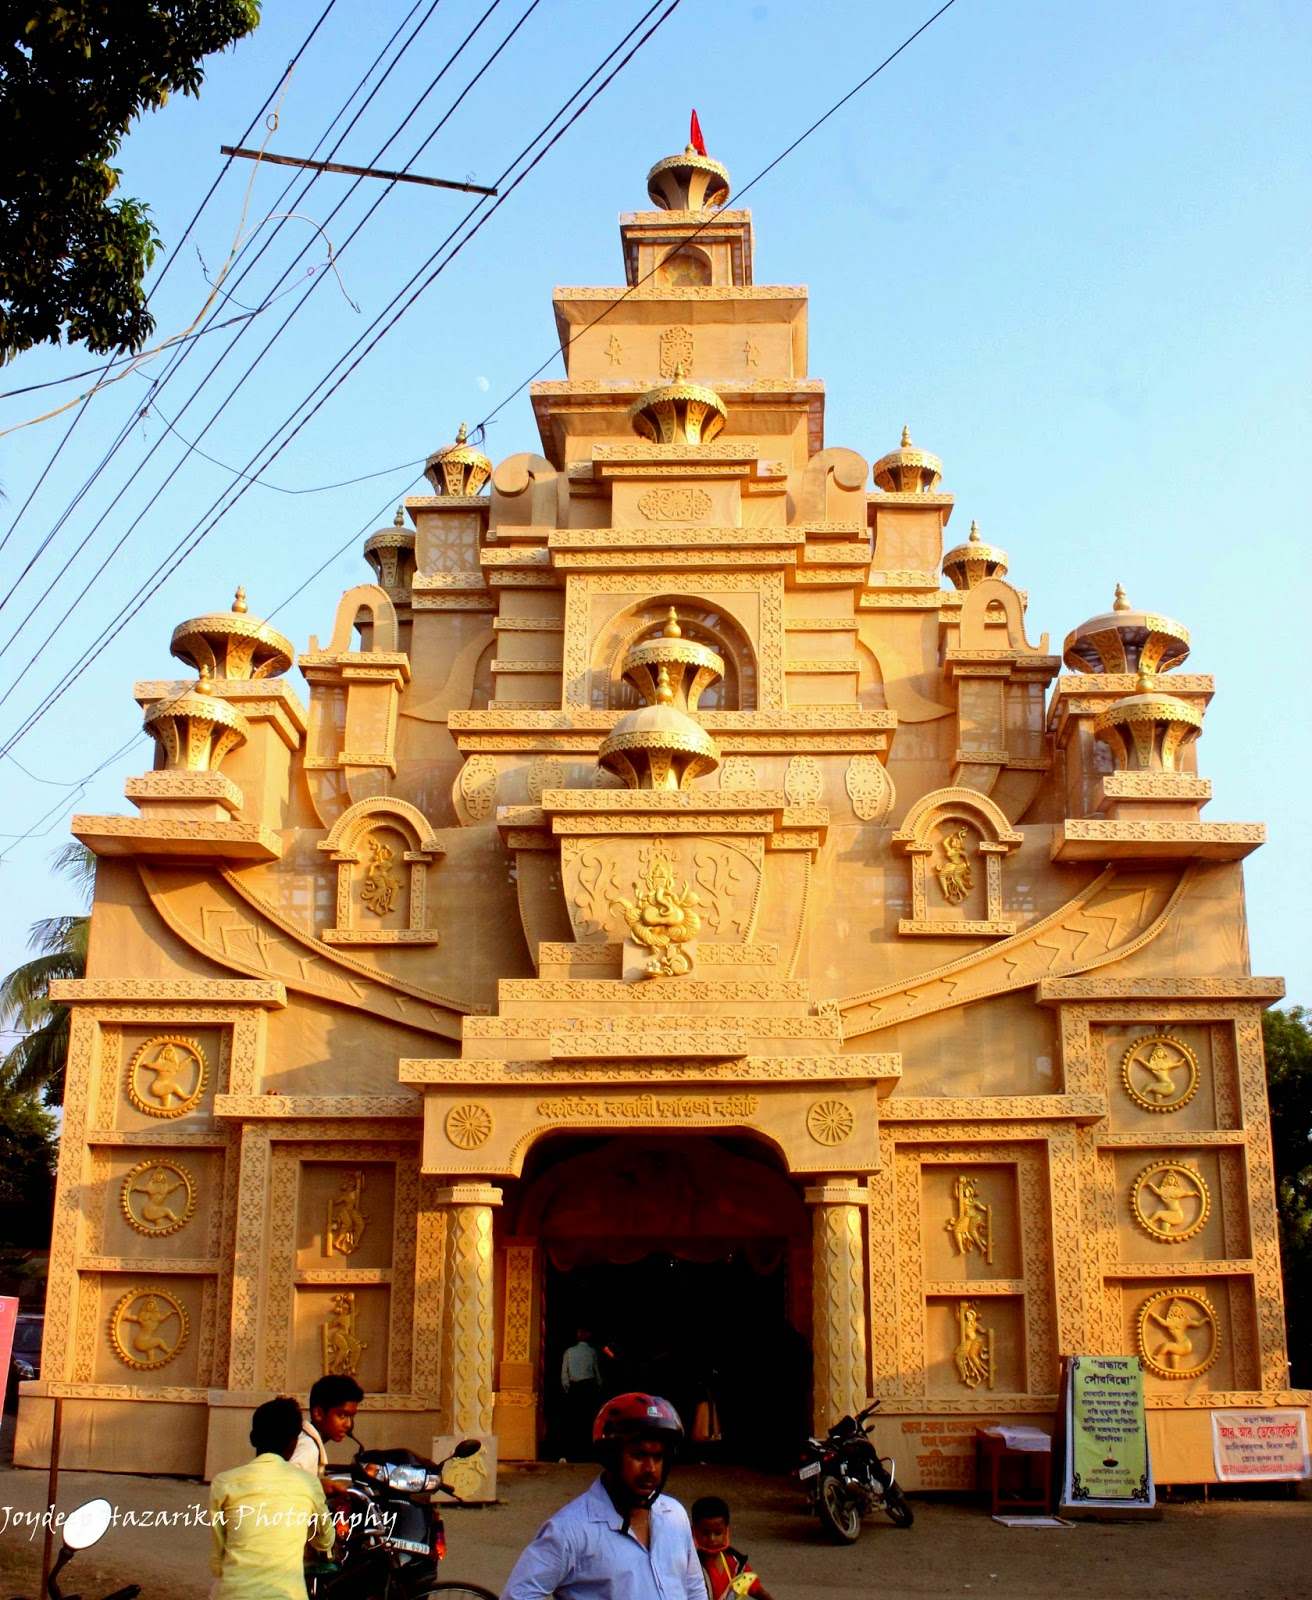 My likhoni durga puja in guwahati viewing through my lenses a grand puja pandal set up in the citys maligaon locality thecheapjerseys Image collections